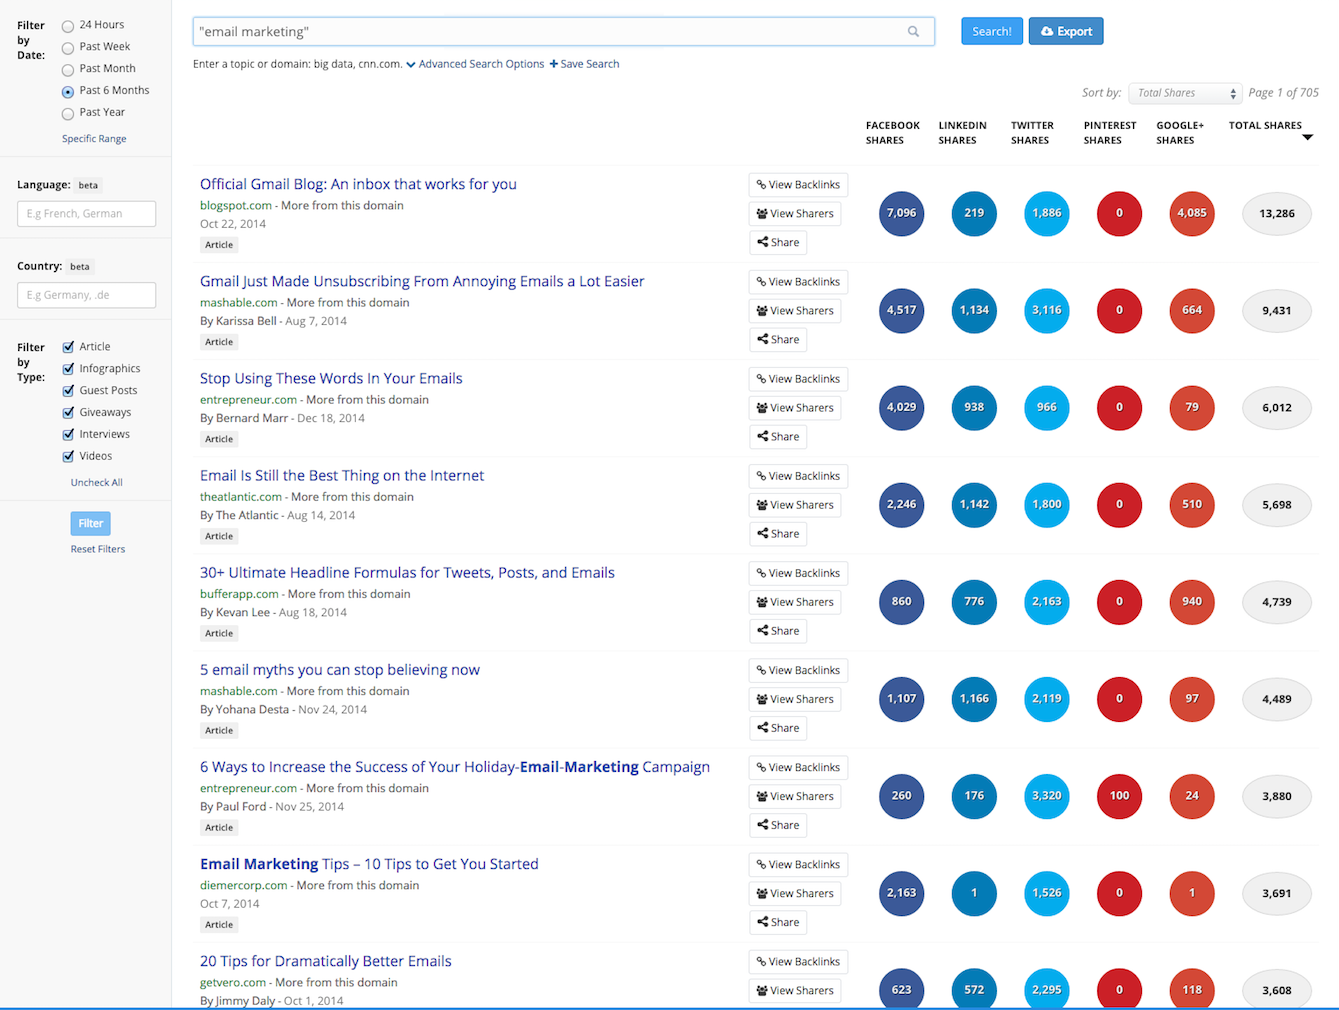 related articles on buzzsumo